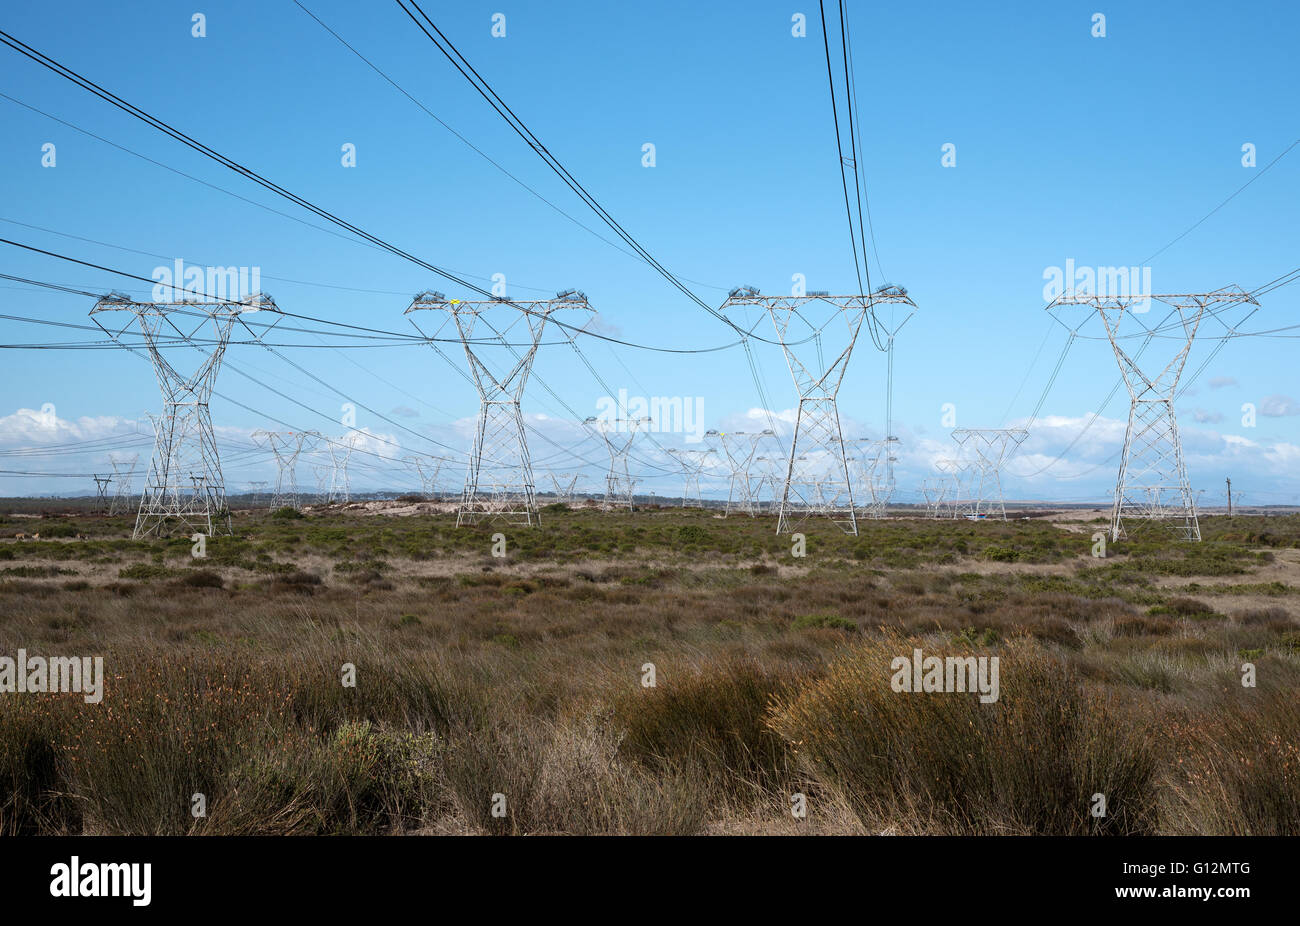 Power lines feed electricity to the national grid from the Koeberg nuclear power station at Melkbosstrand north - Stock Image